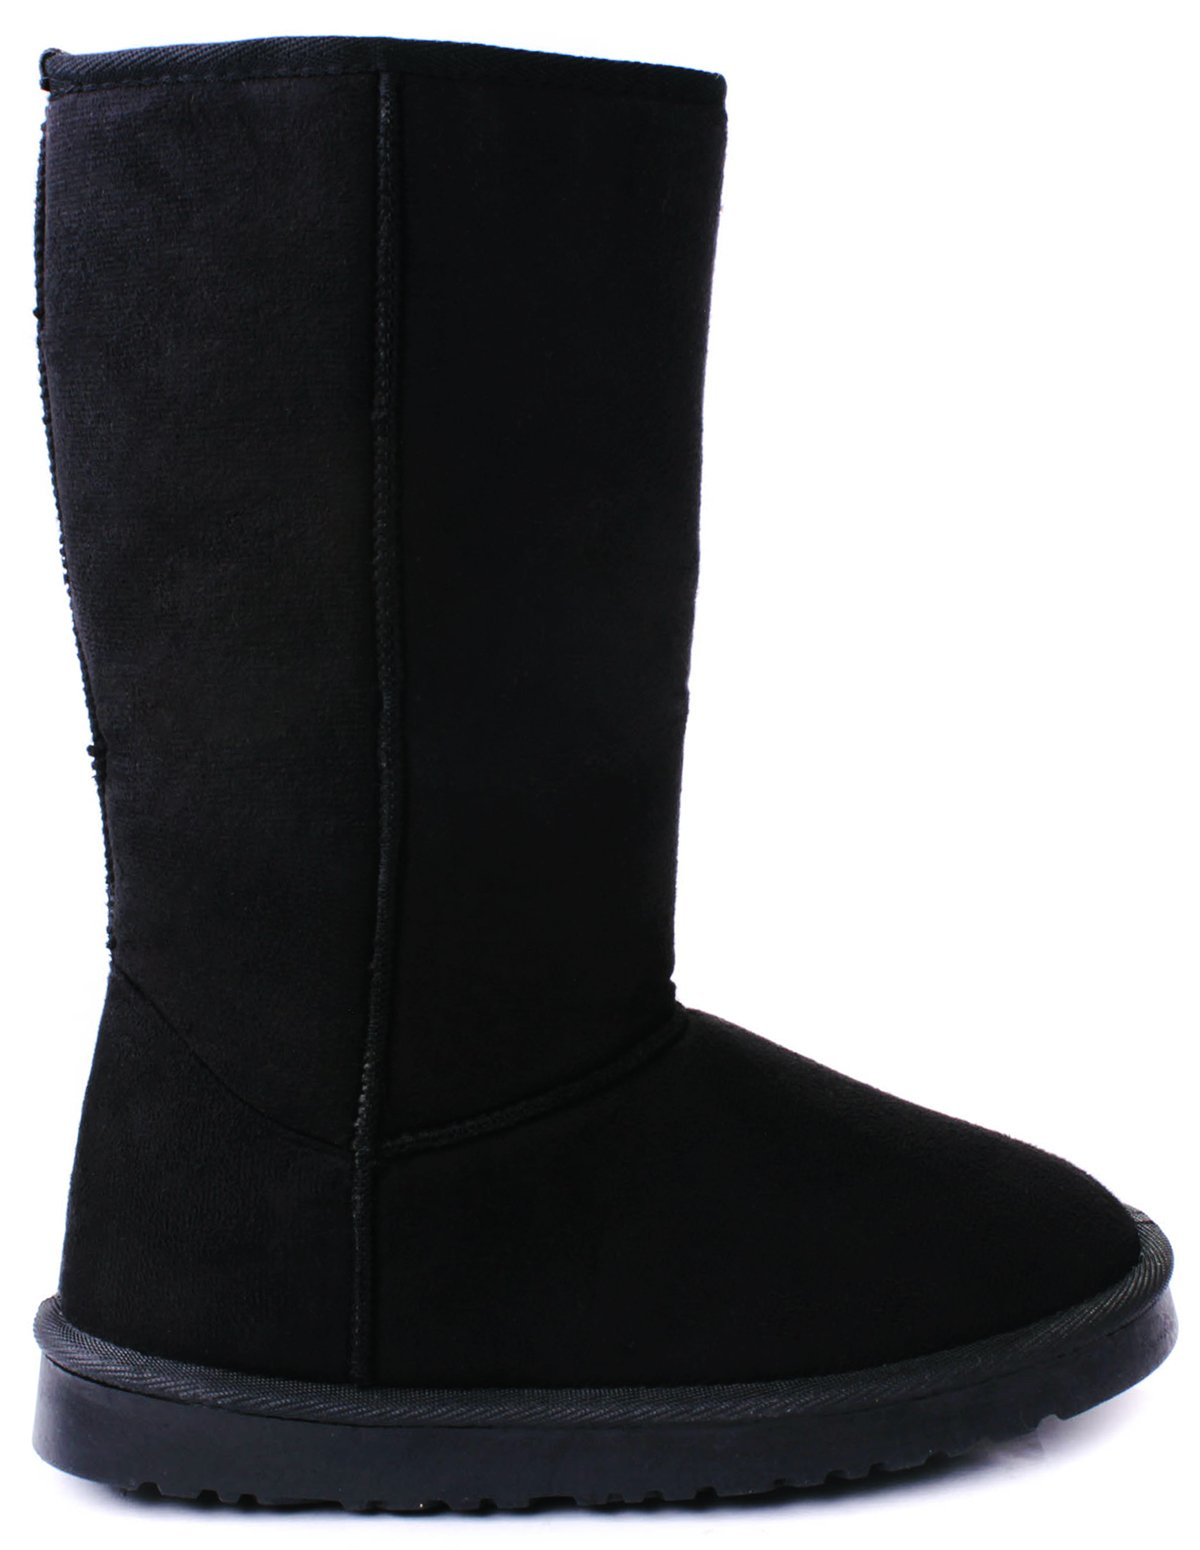 JJF Shoes House Black Faux Suede/Fur Lined Mid Calf Shearling Winter Snow Boots-6